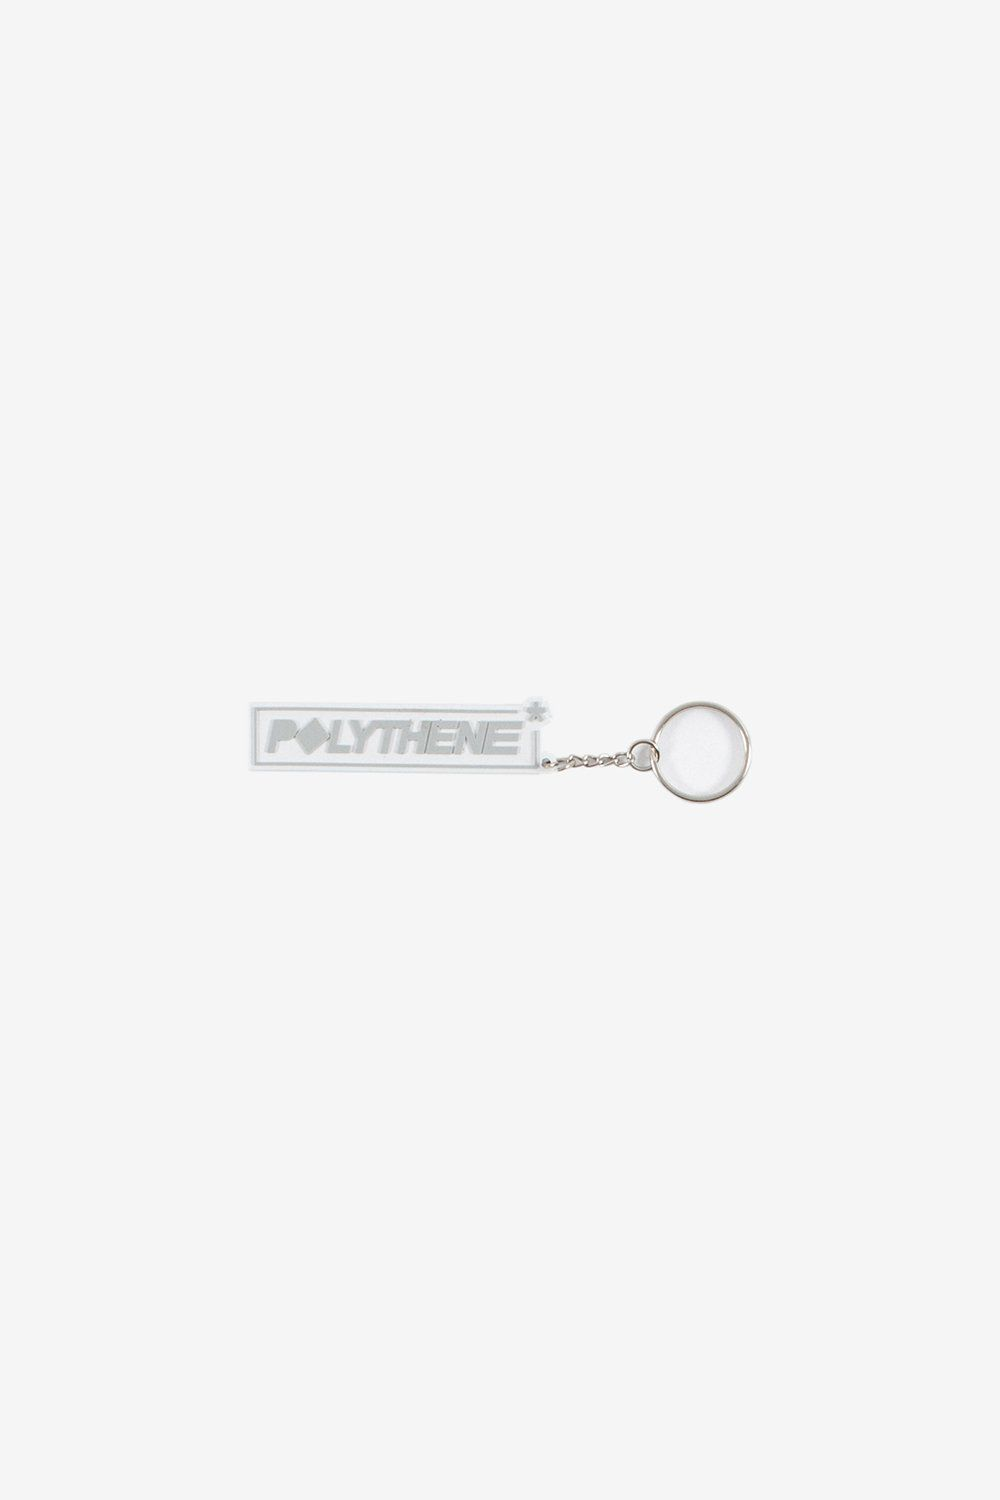 Polythene Optics Accessories OS Rubber Keyring Grey